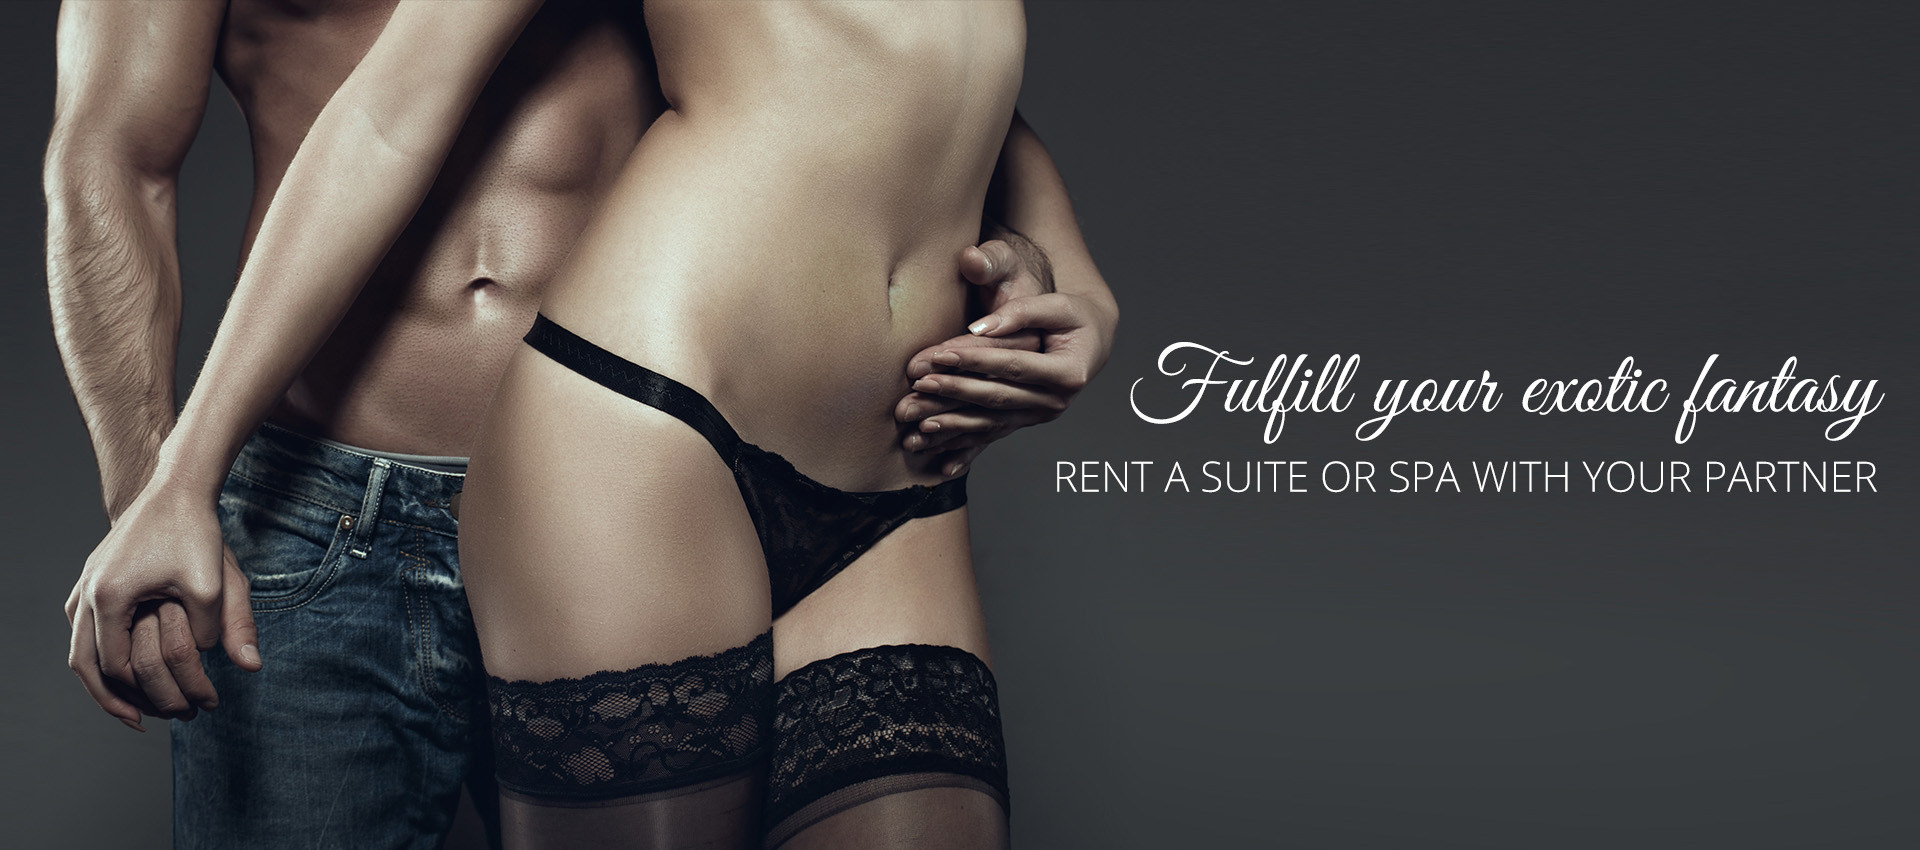 Suit Rental | Adult Services Sydney | Tiffany's Girls